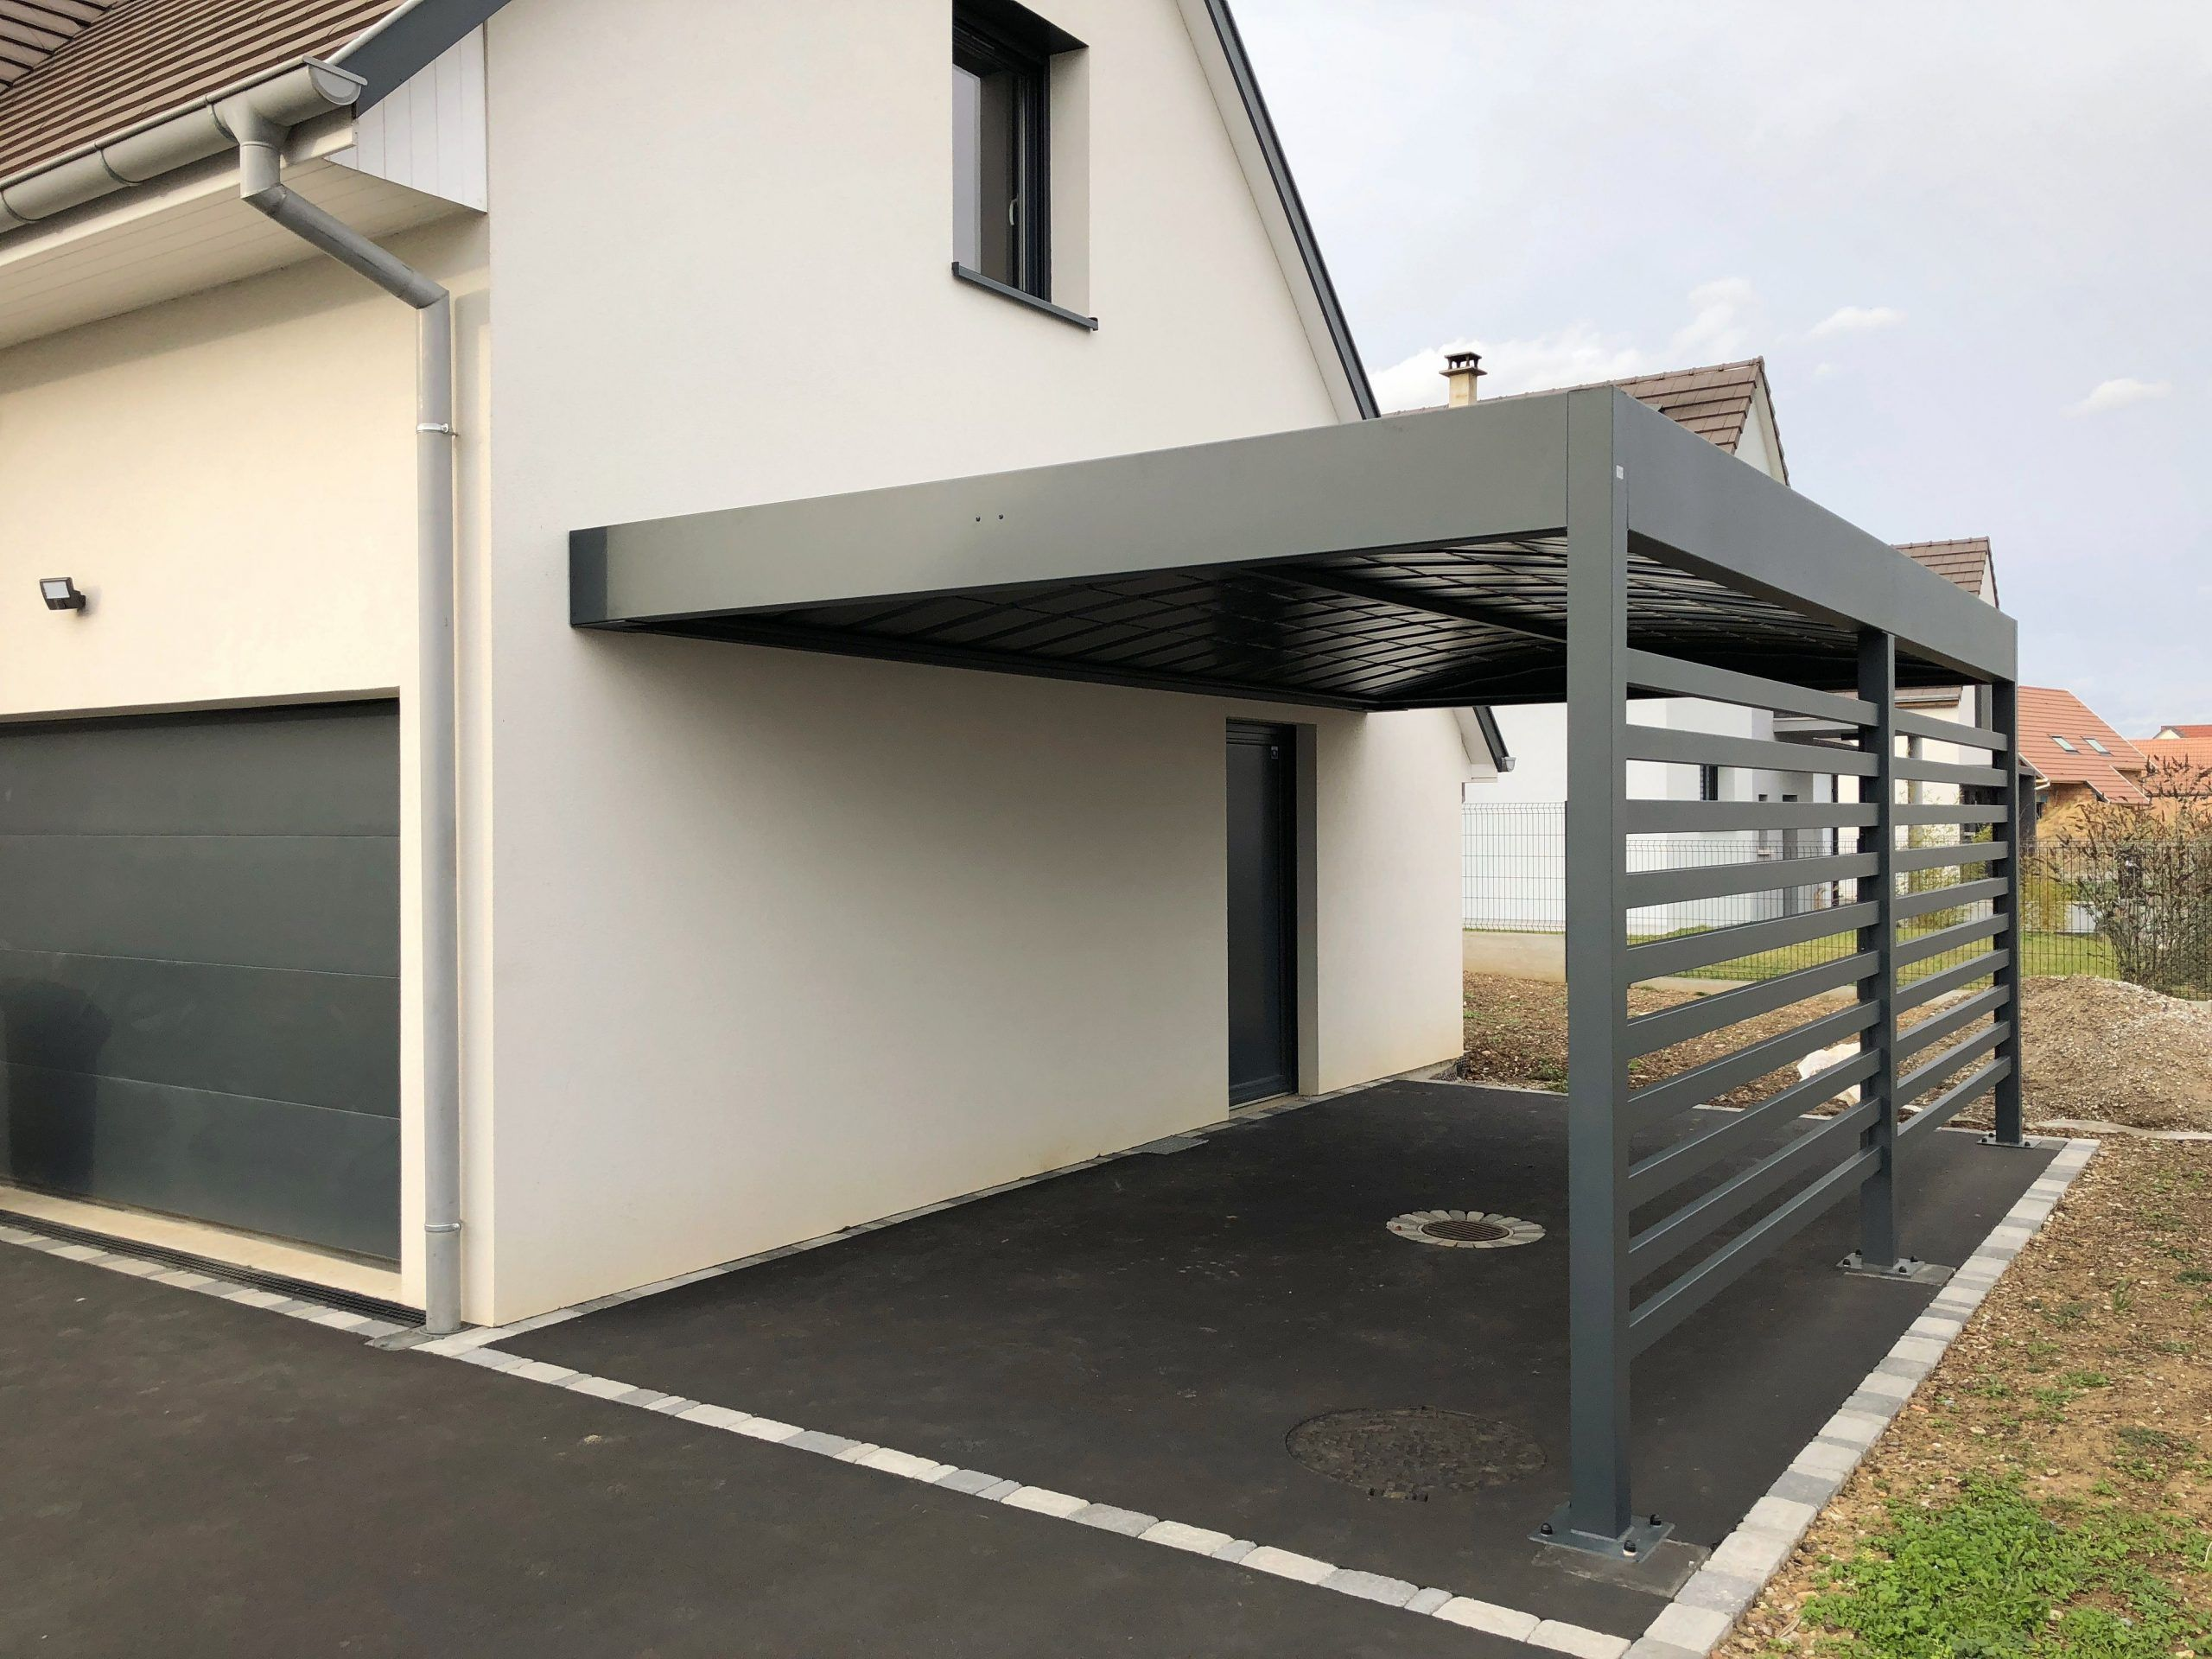 Pin By Mohammed Moola On Fireplaces In 2020 Carport Garage Modern Carport Carport Makeover